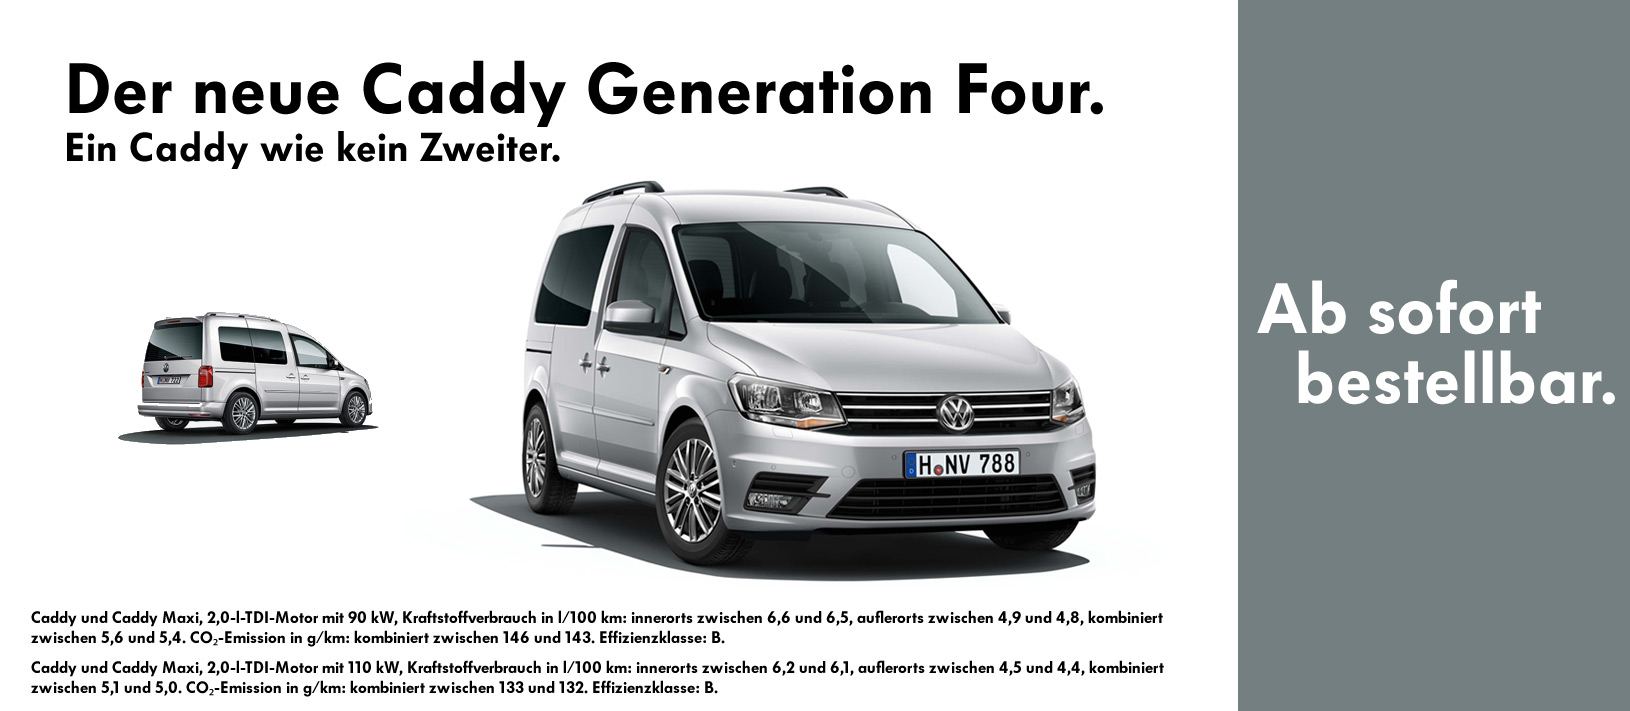 VW Caddy Generation Four.